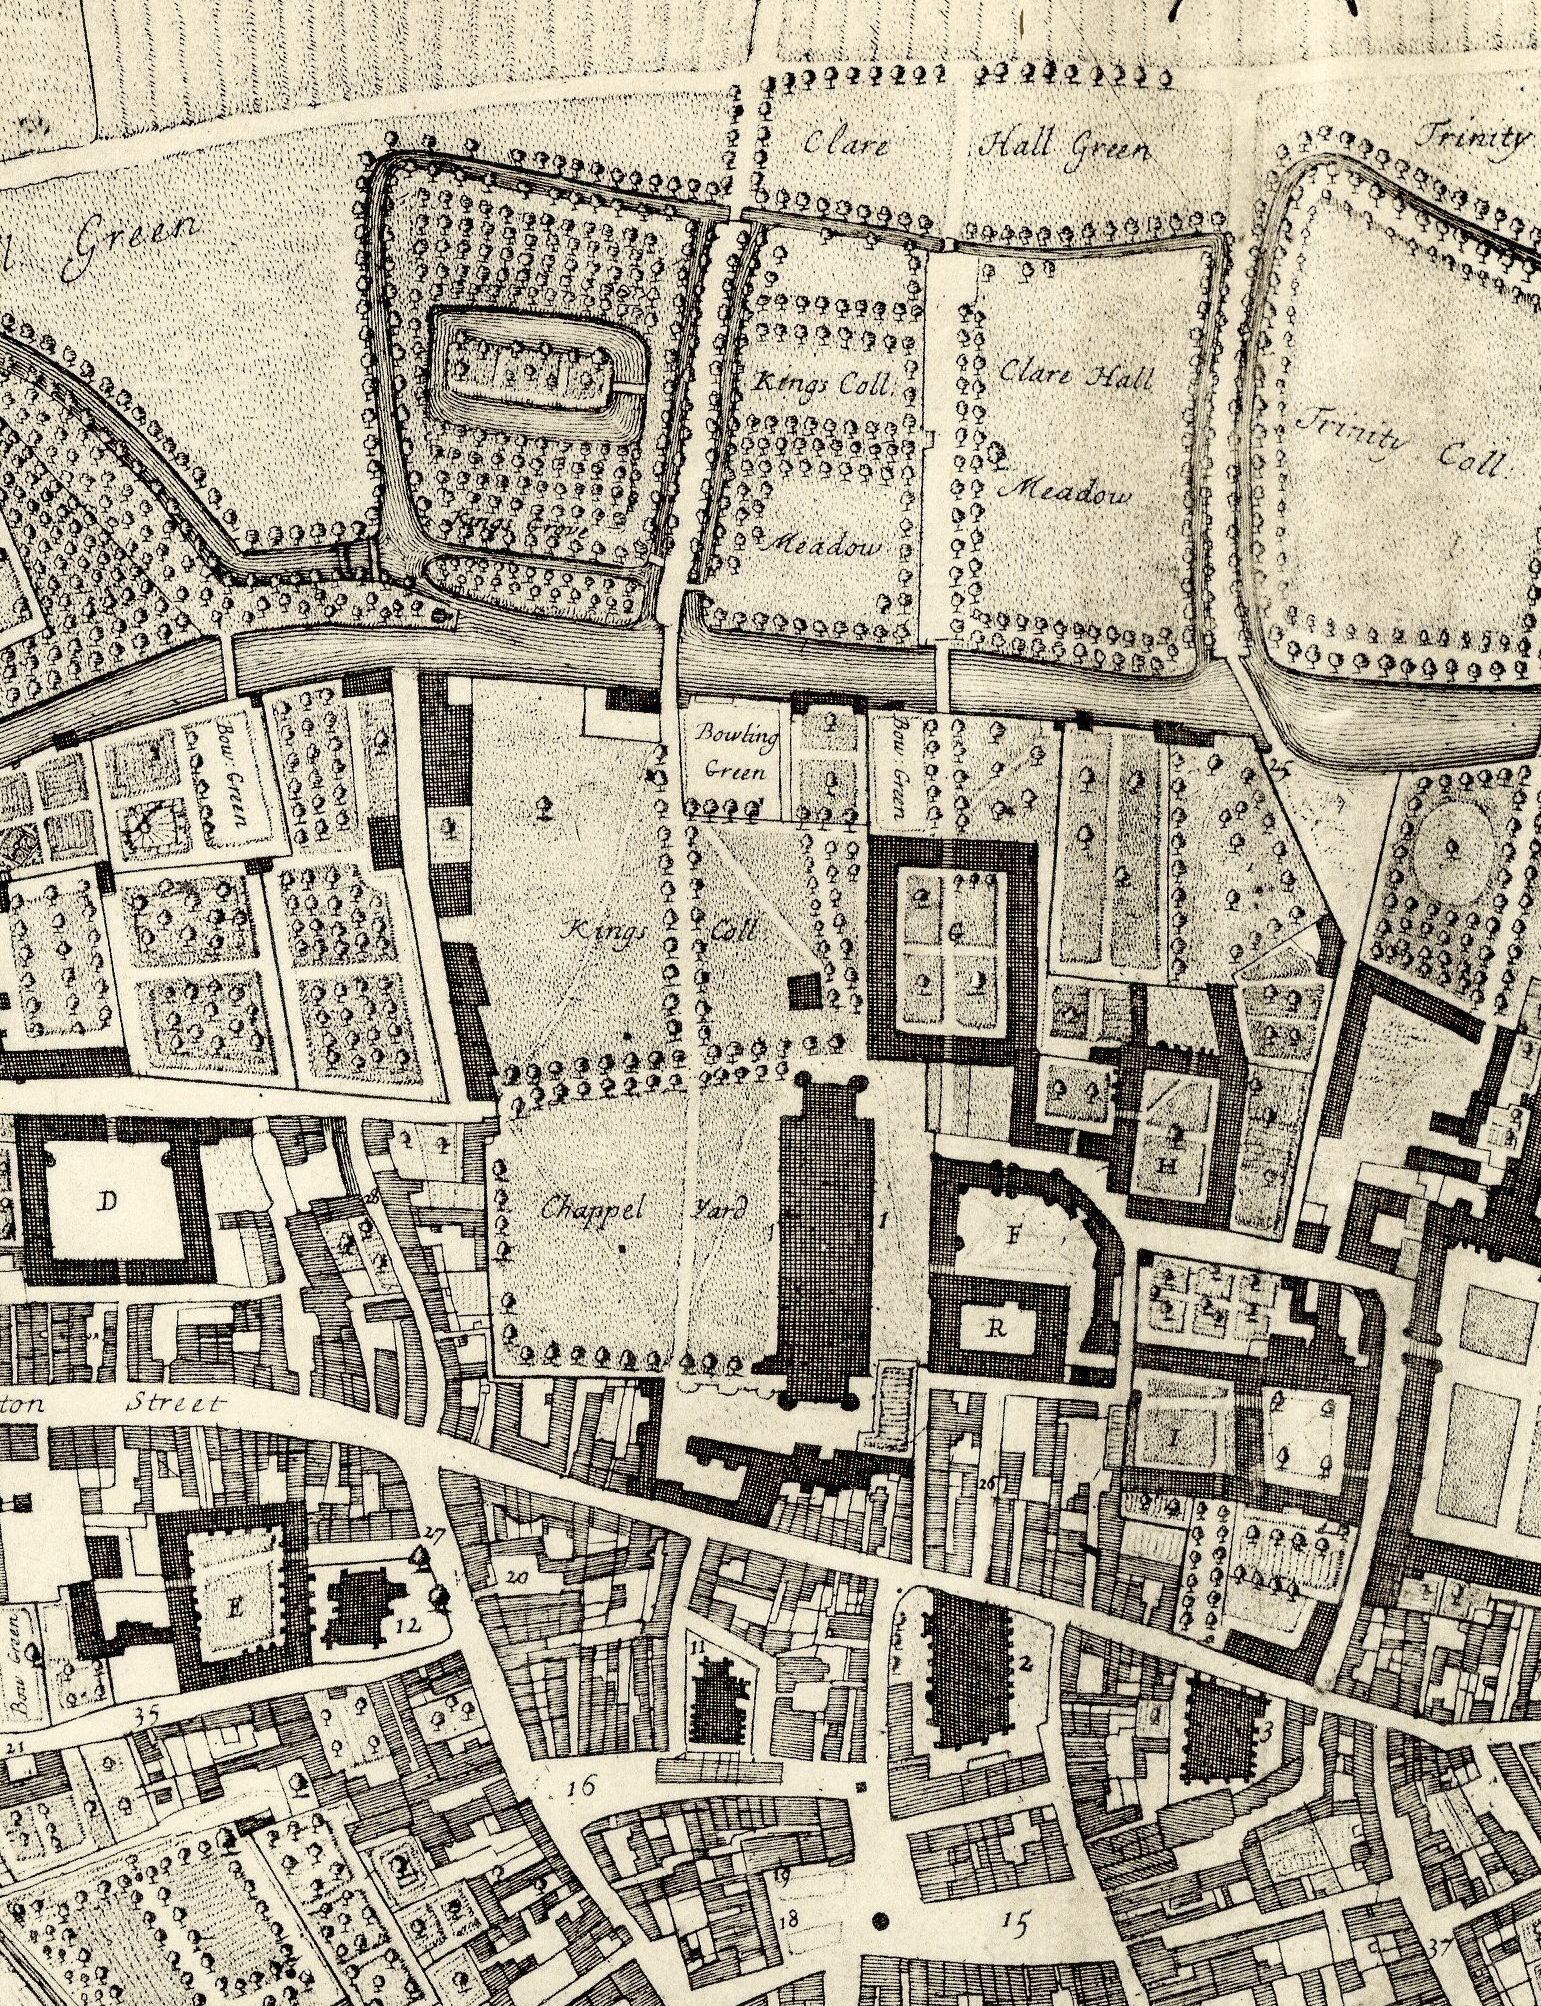 Part of a birds-eye view of Cambridge, by David Loggan, 1688, showing the current Chapel, the Old Court and other early College buildings. [Clark and Gray, plate 6 south]